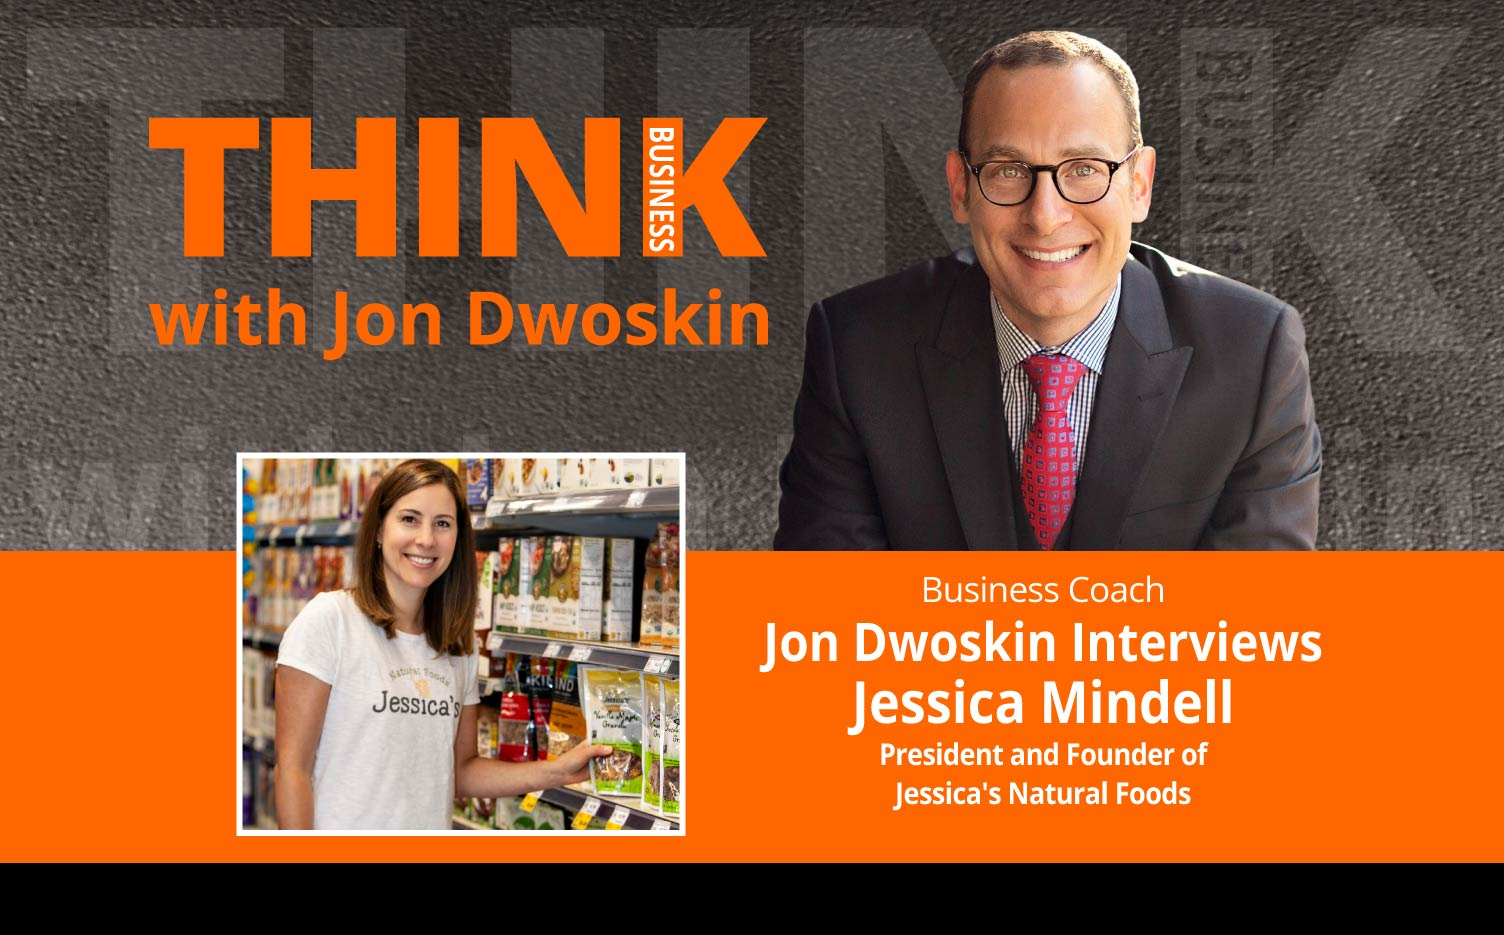 THINK Business Podcast: Jon Dwoskin Interviews Jessica Mindell, President and Founder of Jessica's Natural Foods